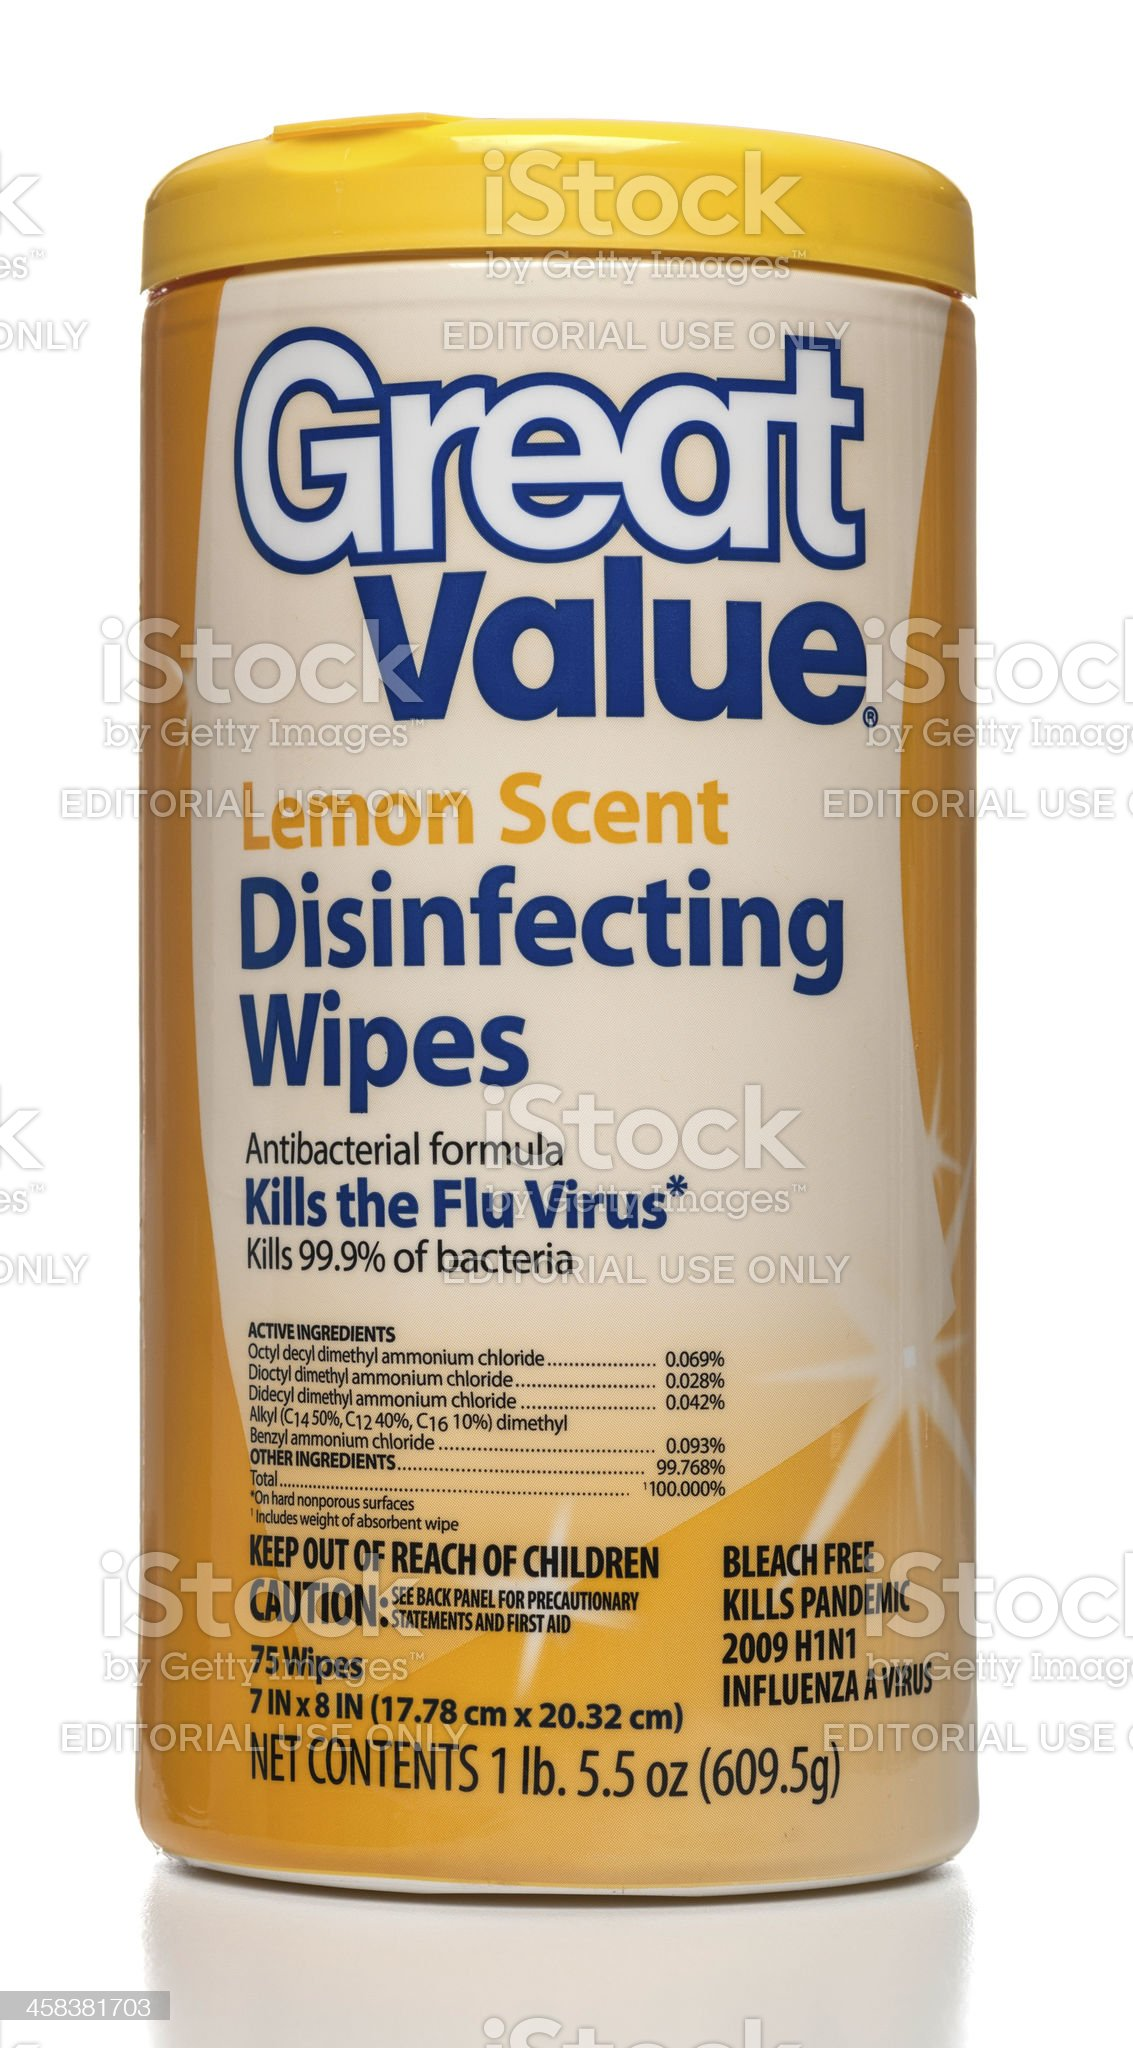 Great Value lemon scent disinfecting wipes canister royalty-free stock photo